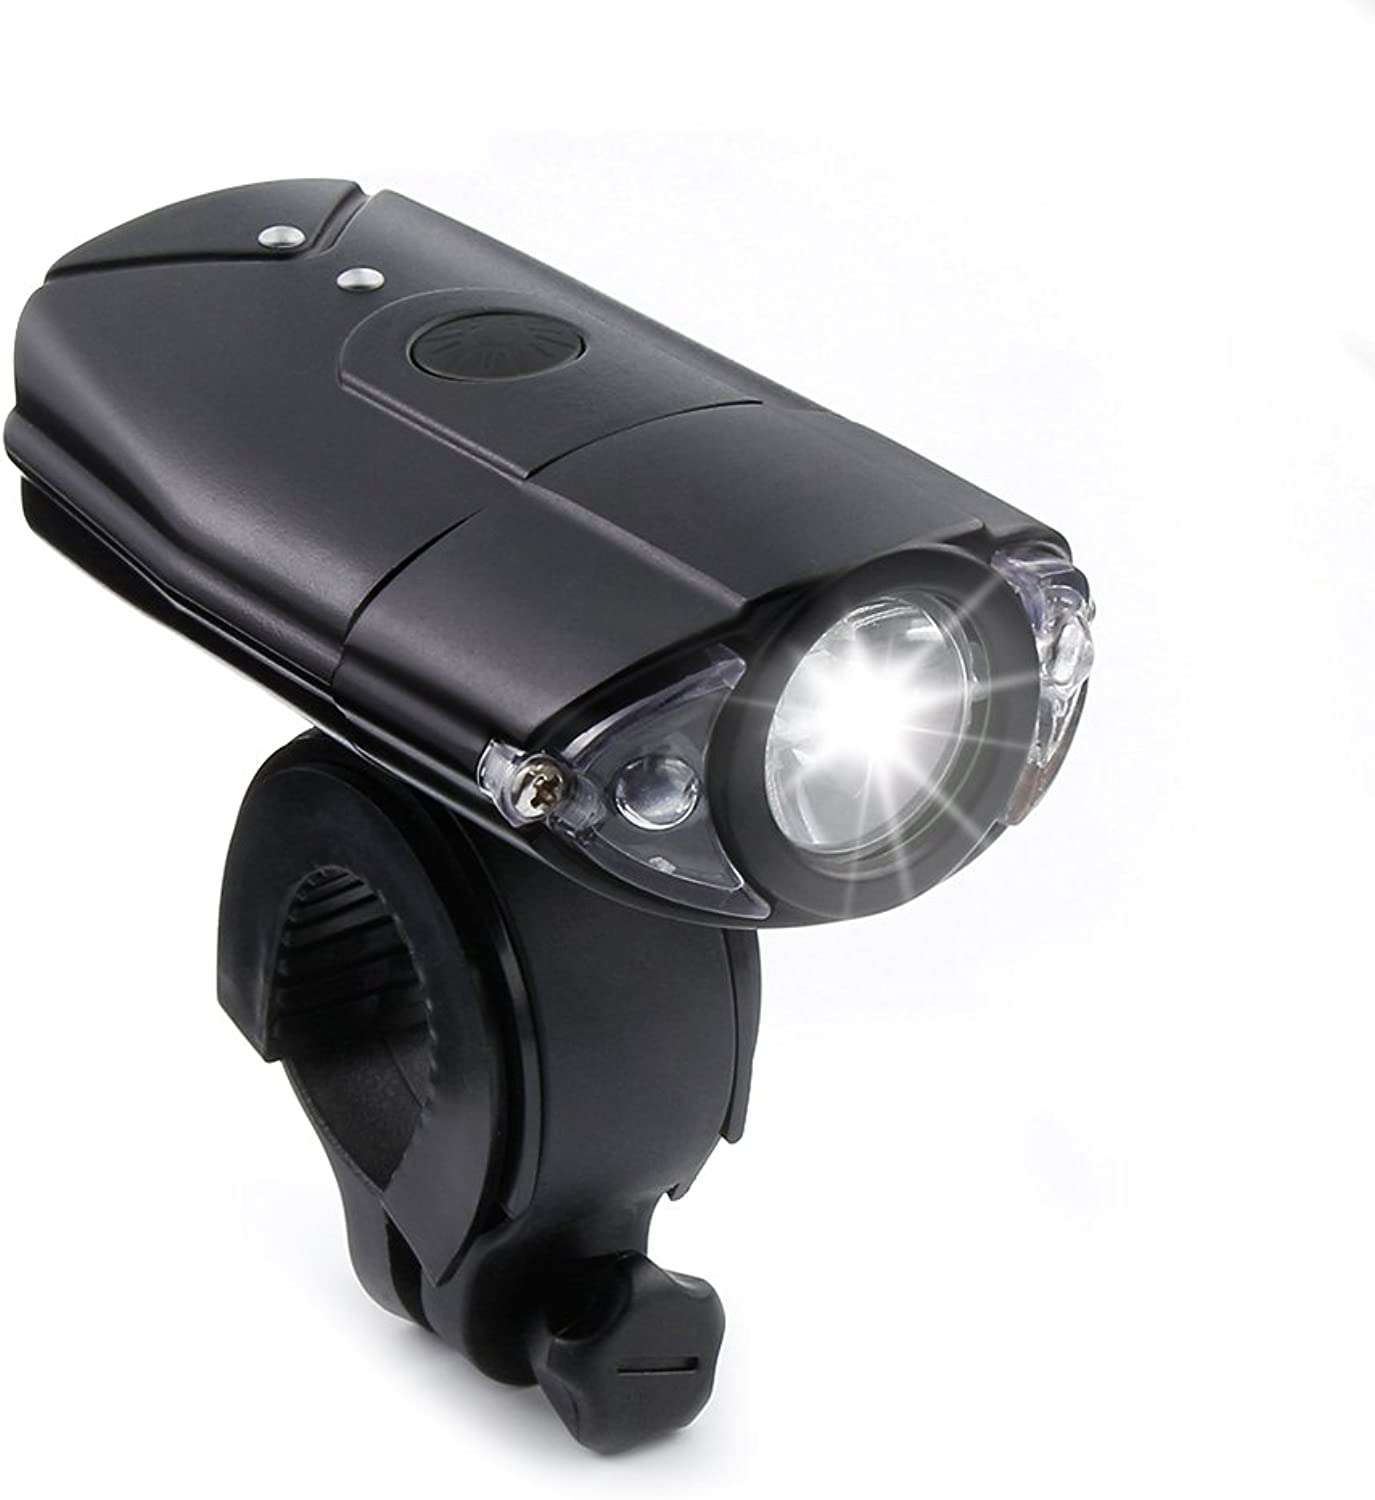 Bike Headlight ThorFire USB Rechargeable Bicycle Headlamp Super Bright LED Bike Headlamp Water Resistant Bike Light Set 1200 lumen 2000mah Lithium Battery 3 Light Mode Options